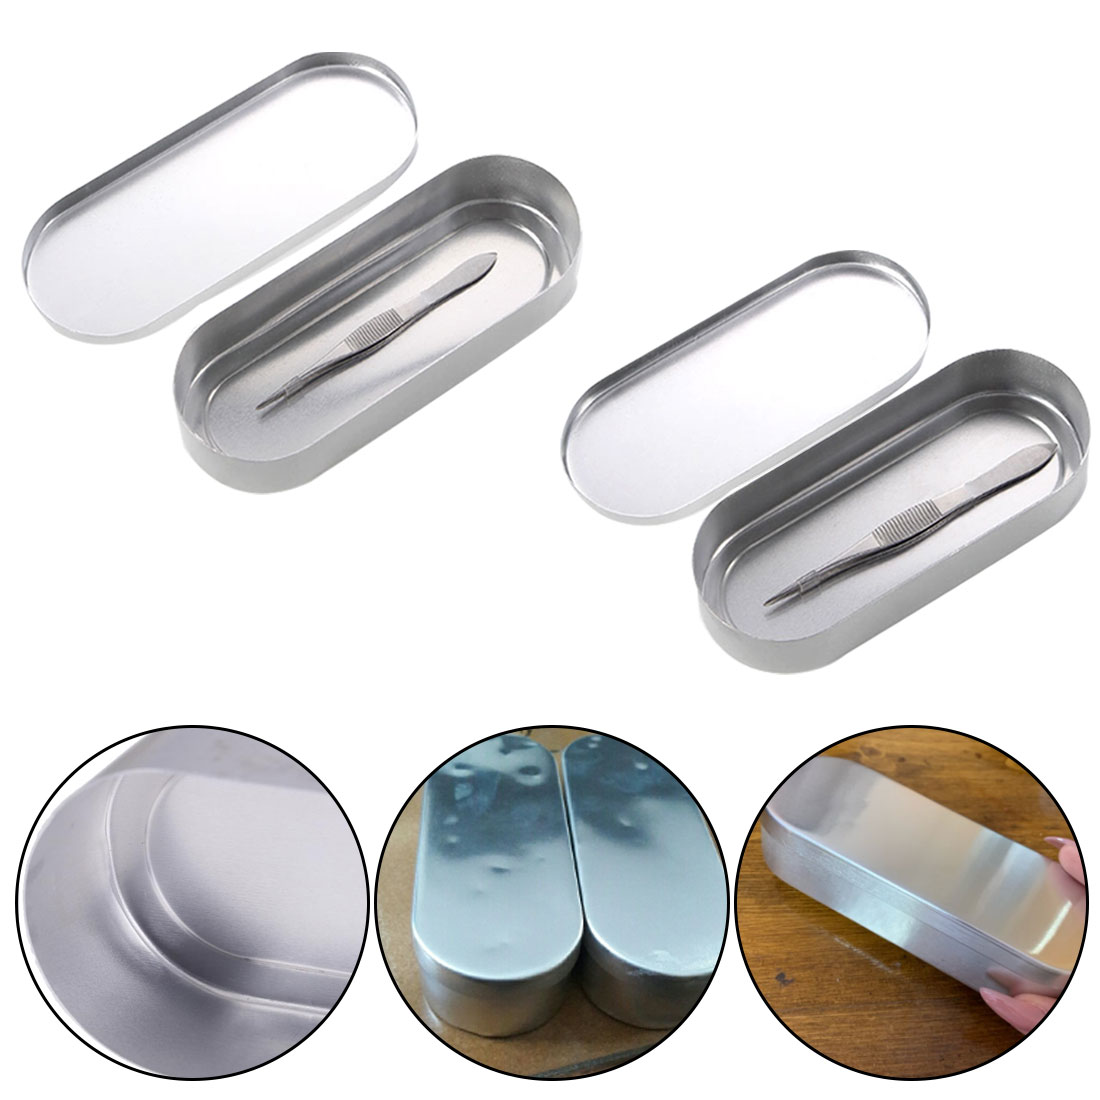 Dental Manicure Nail Tools Sterilizer Tray Medical Needle Disinfection Box Sterilizer Box Sterilizer Tray Container